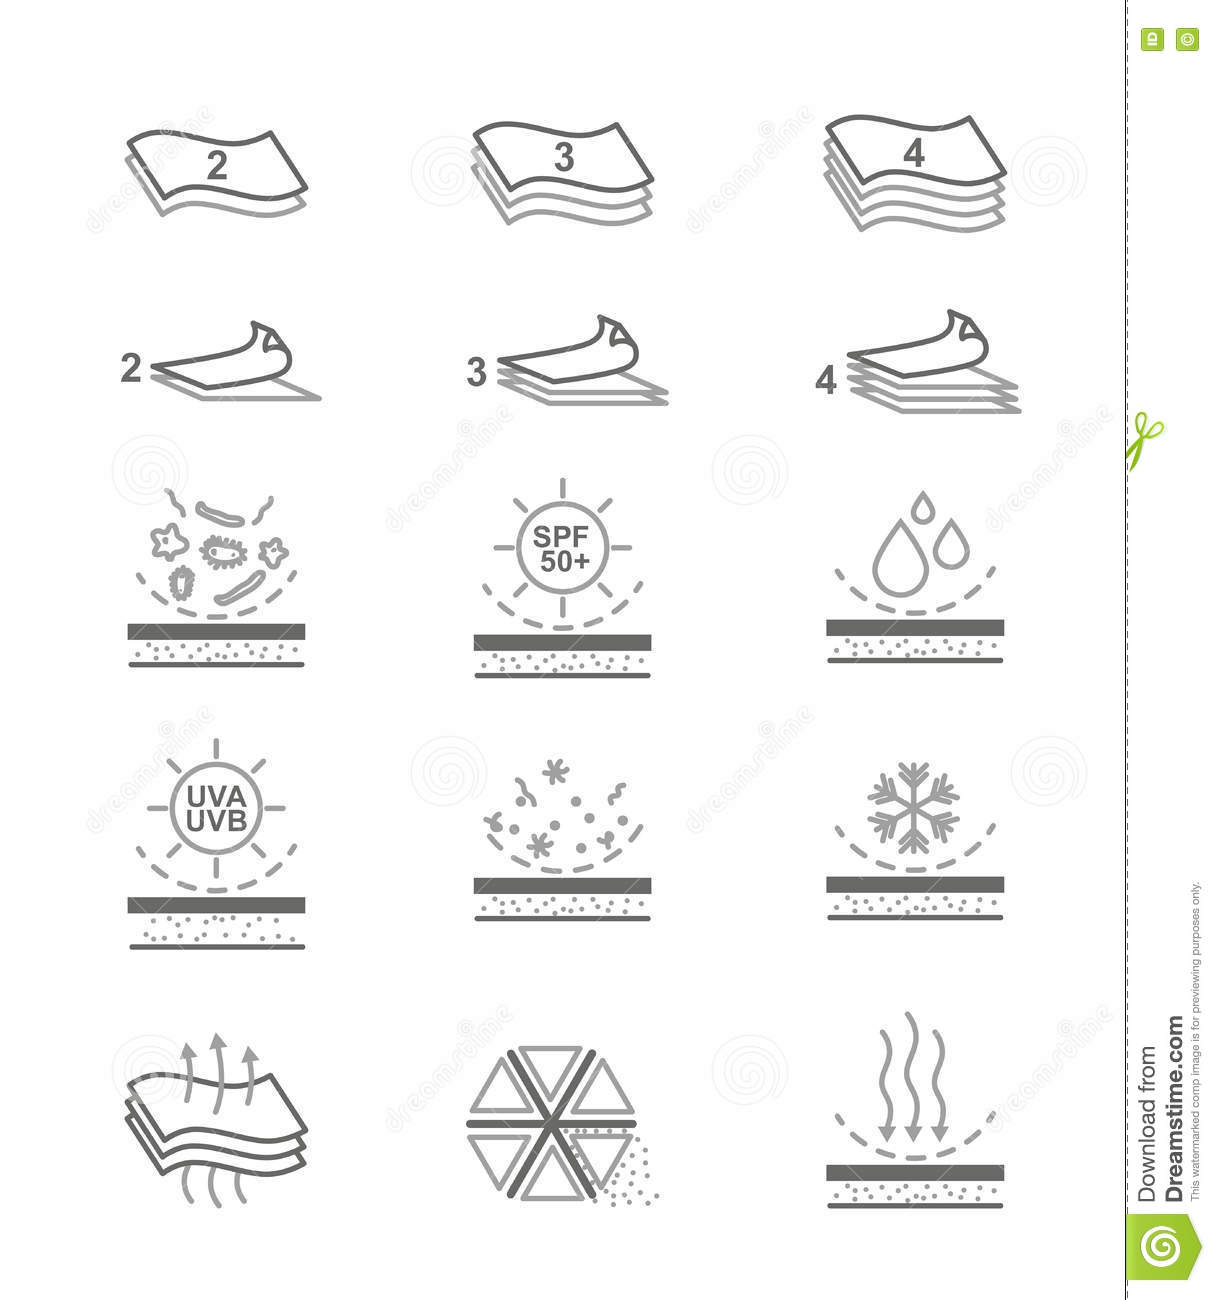 Fabric Properties Icons Vector Illustration